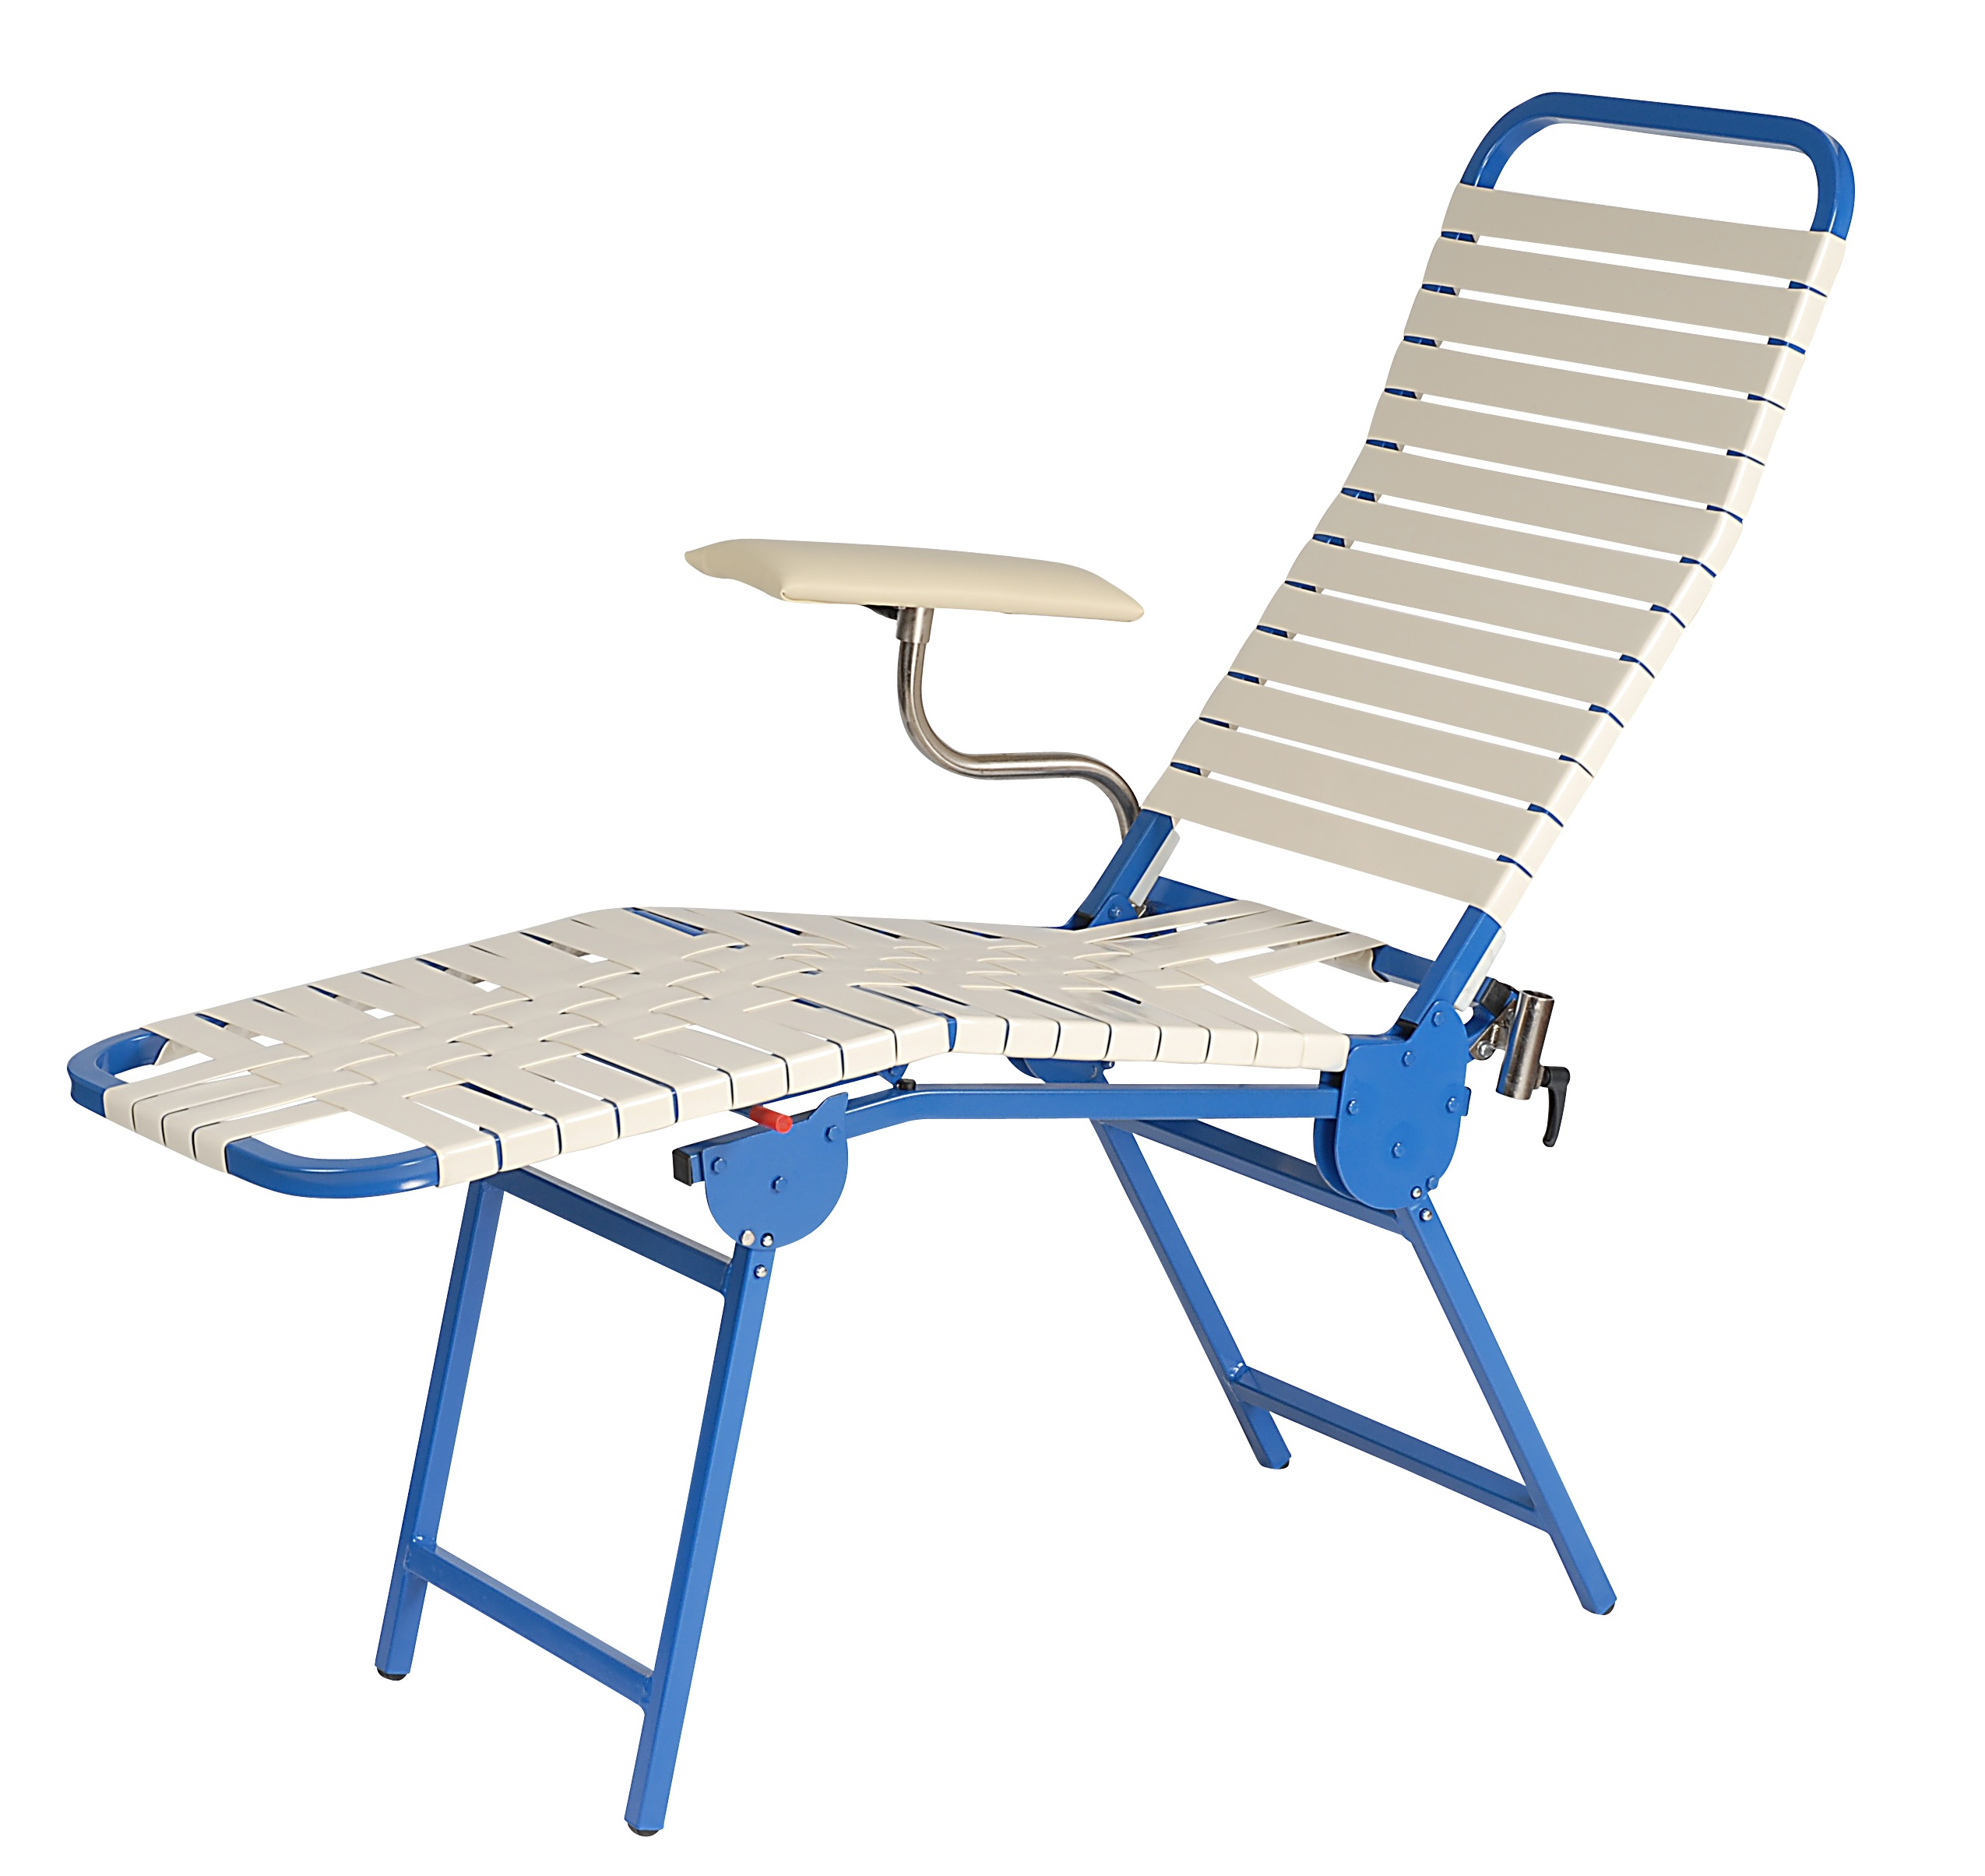 Marvelous Portable Folding Donor Bed Unemploymentrelief Wooden Chair Designs For Living Room Unemploymentrelieforg